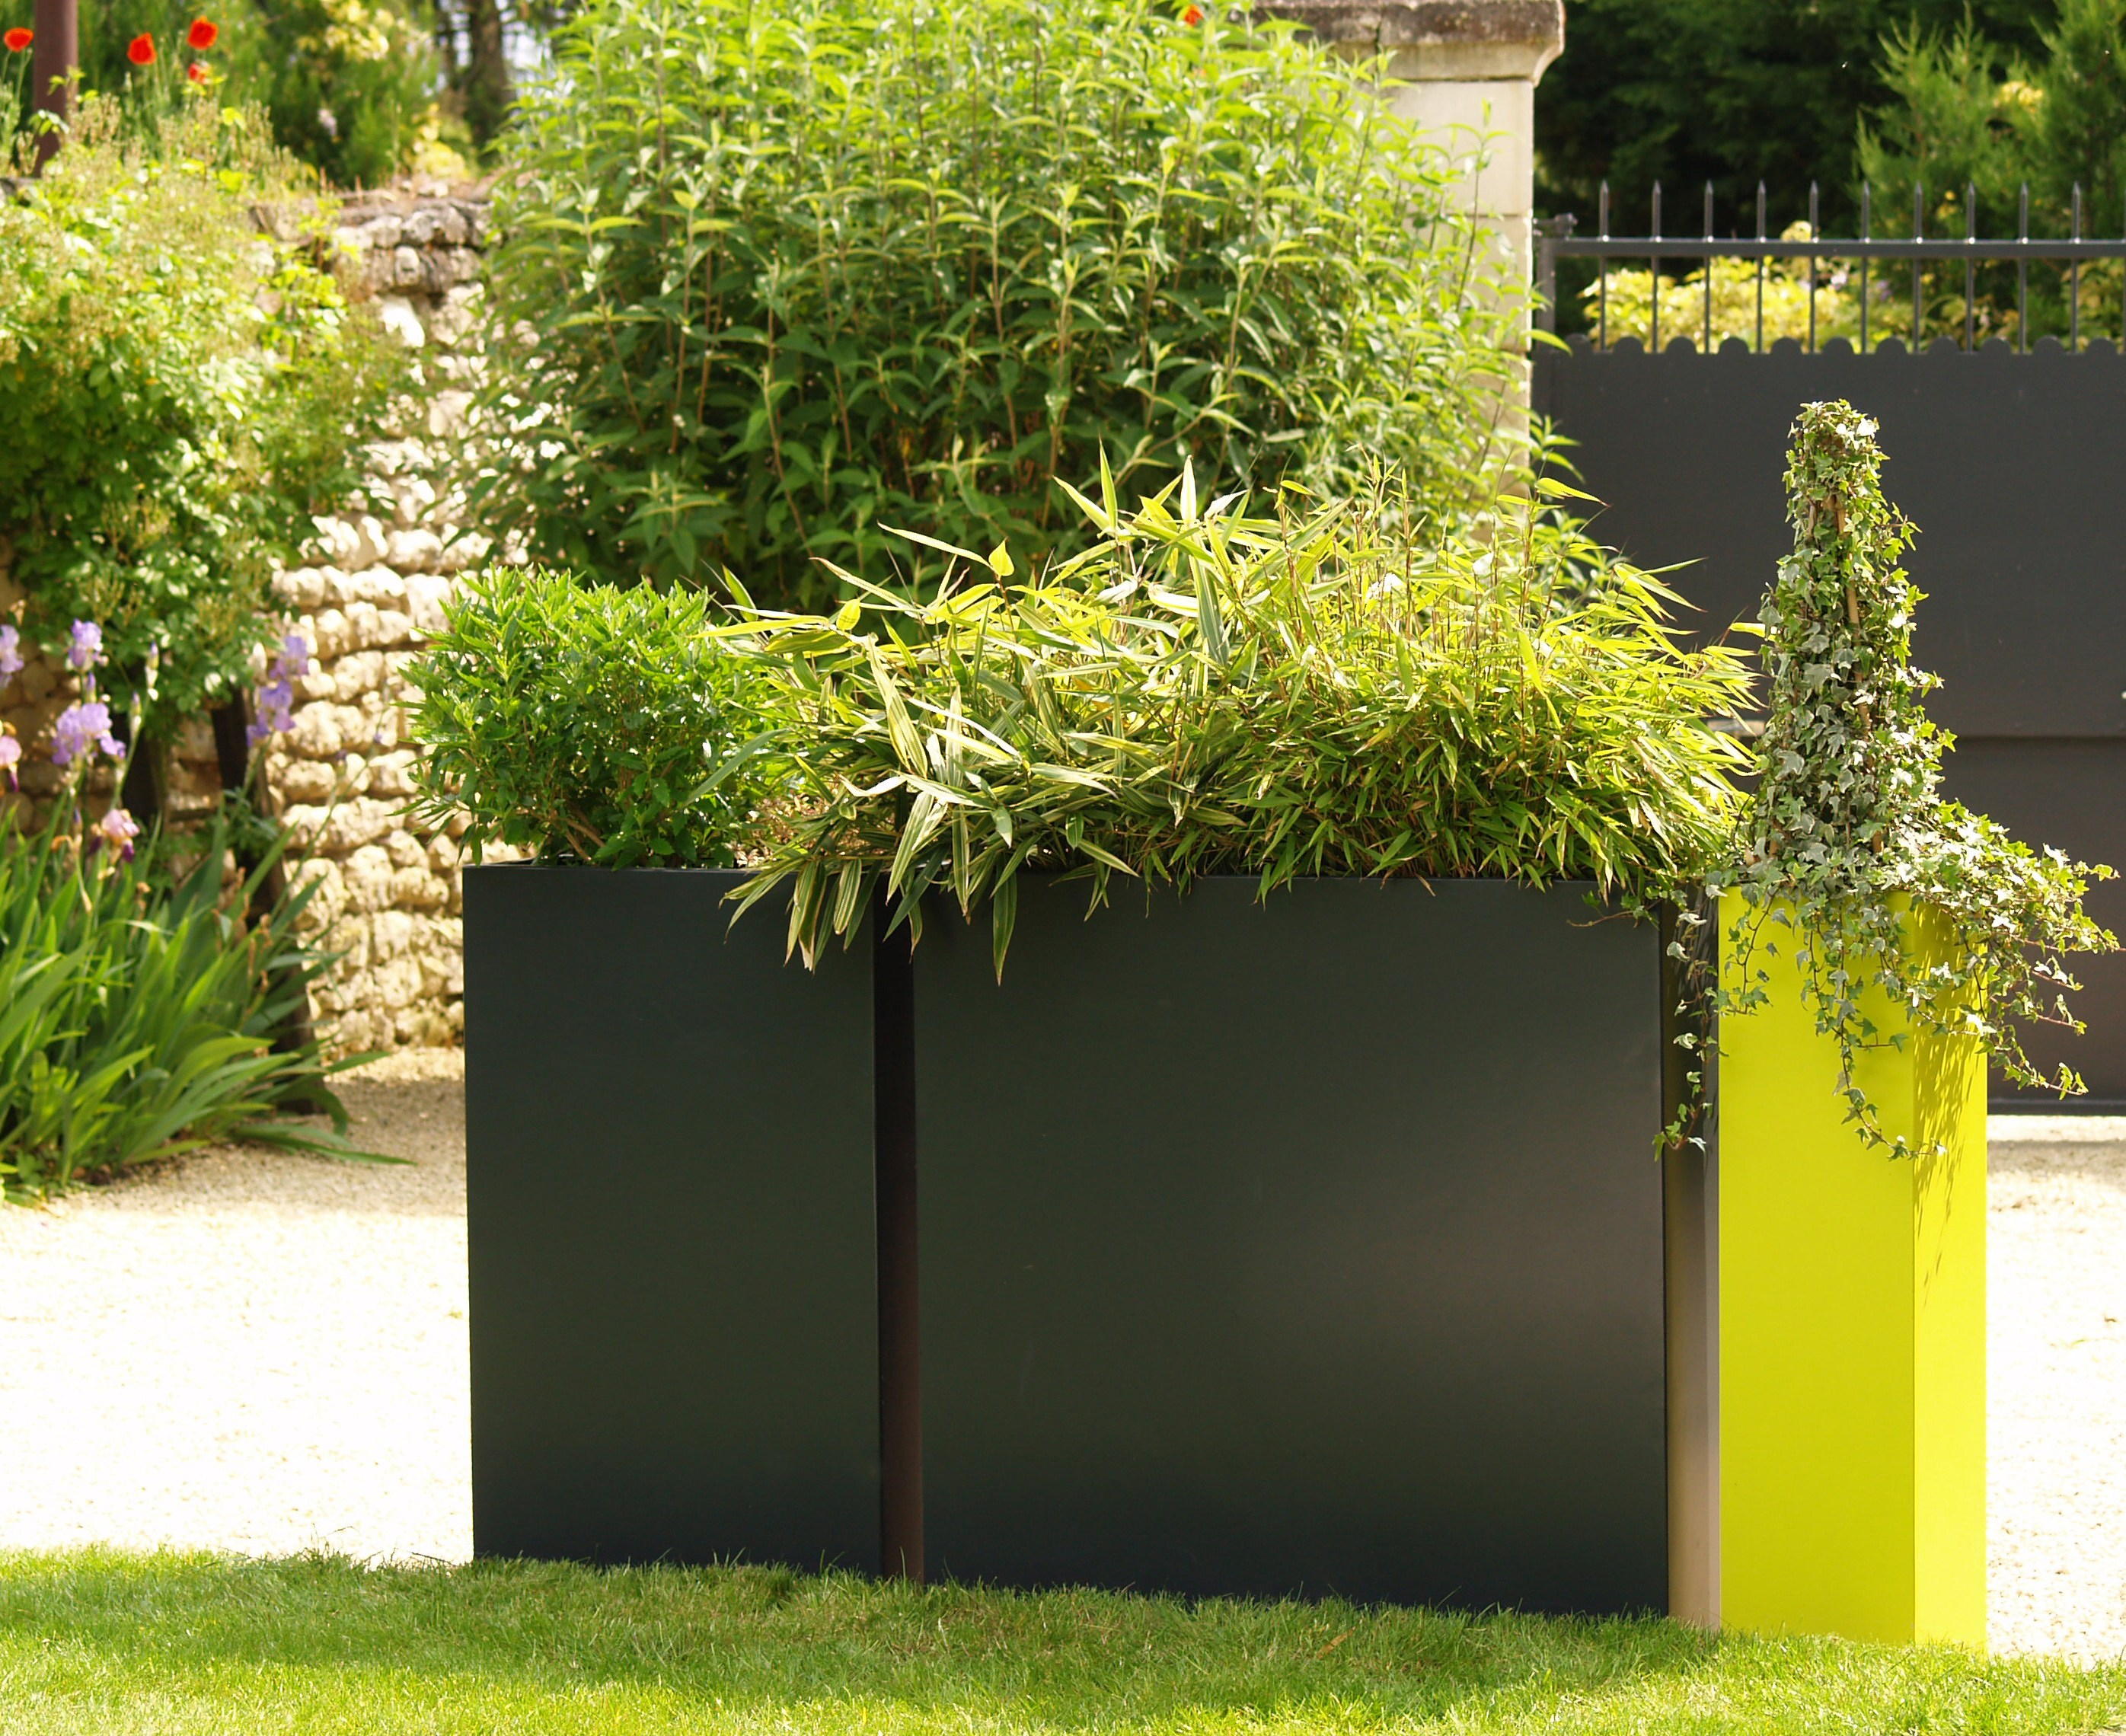 blumenkasten aus faserzement irf by image 39 in by atelier so. Black Bedroom Furniture Sets. Home Design Ideas